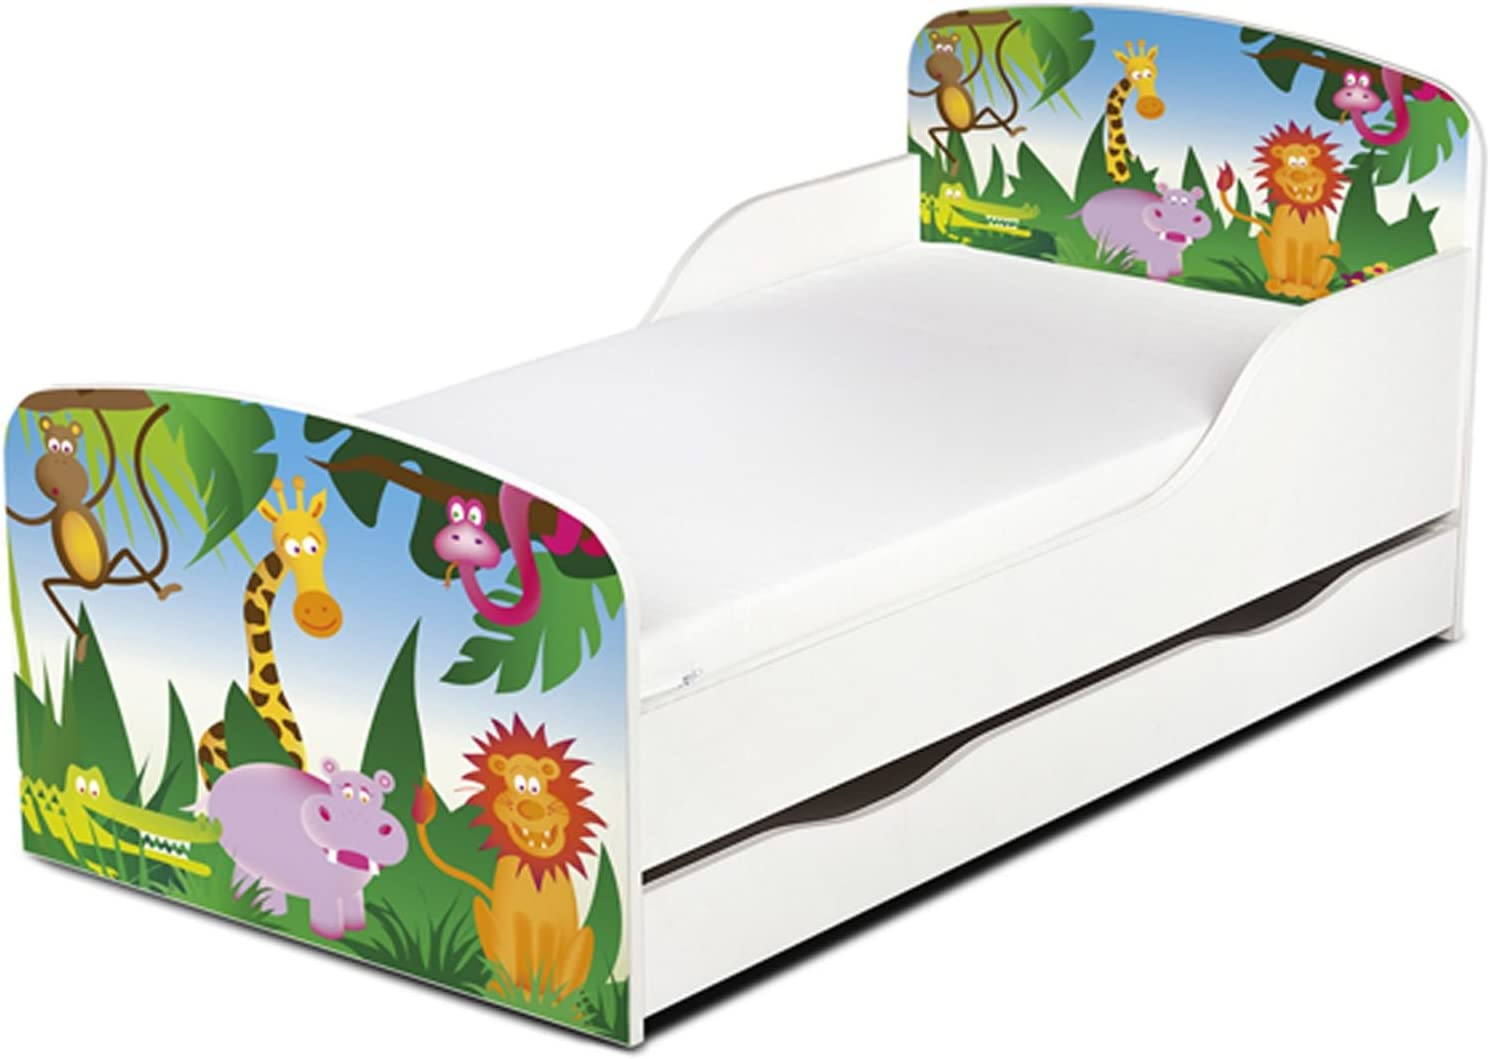 Price Right Home Jungle Design MDF Toddler Bed With Storage